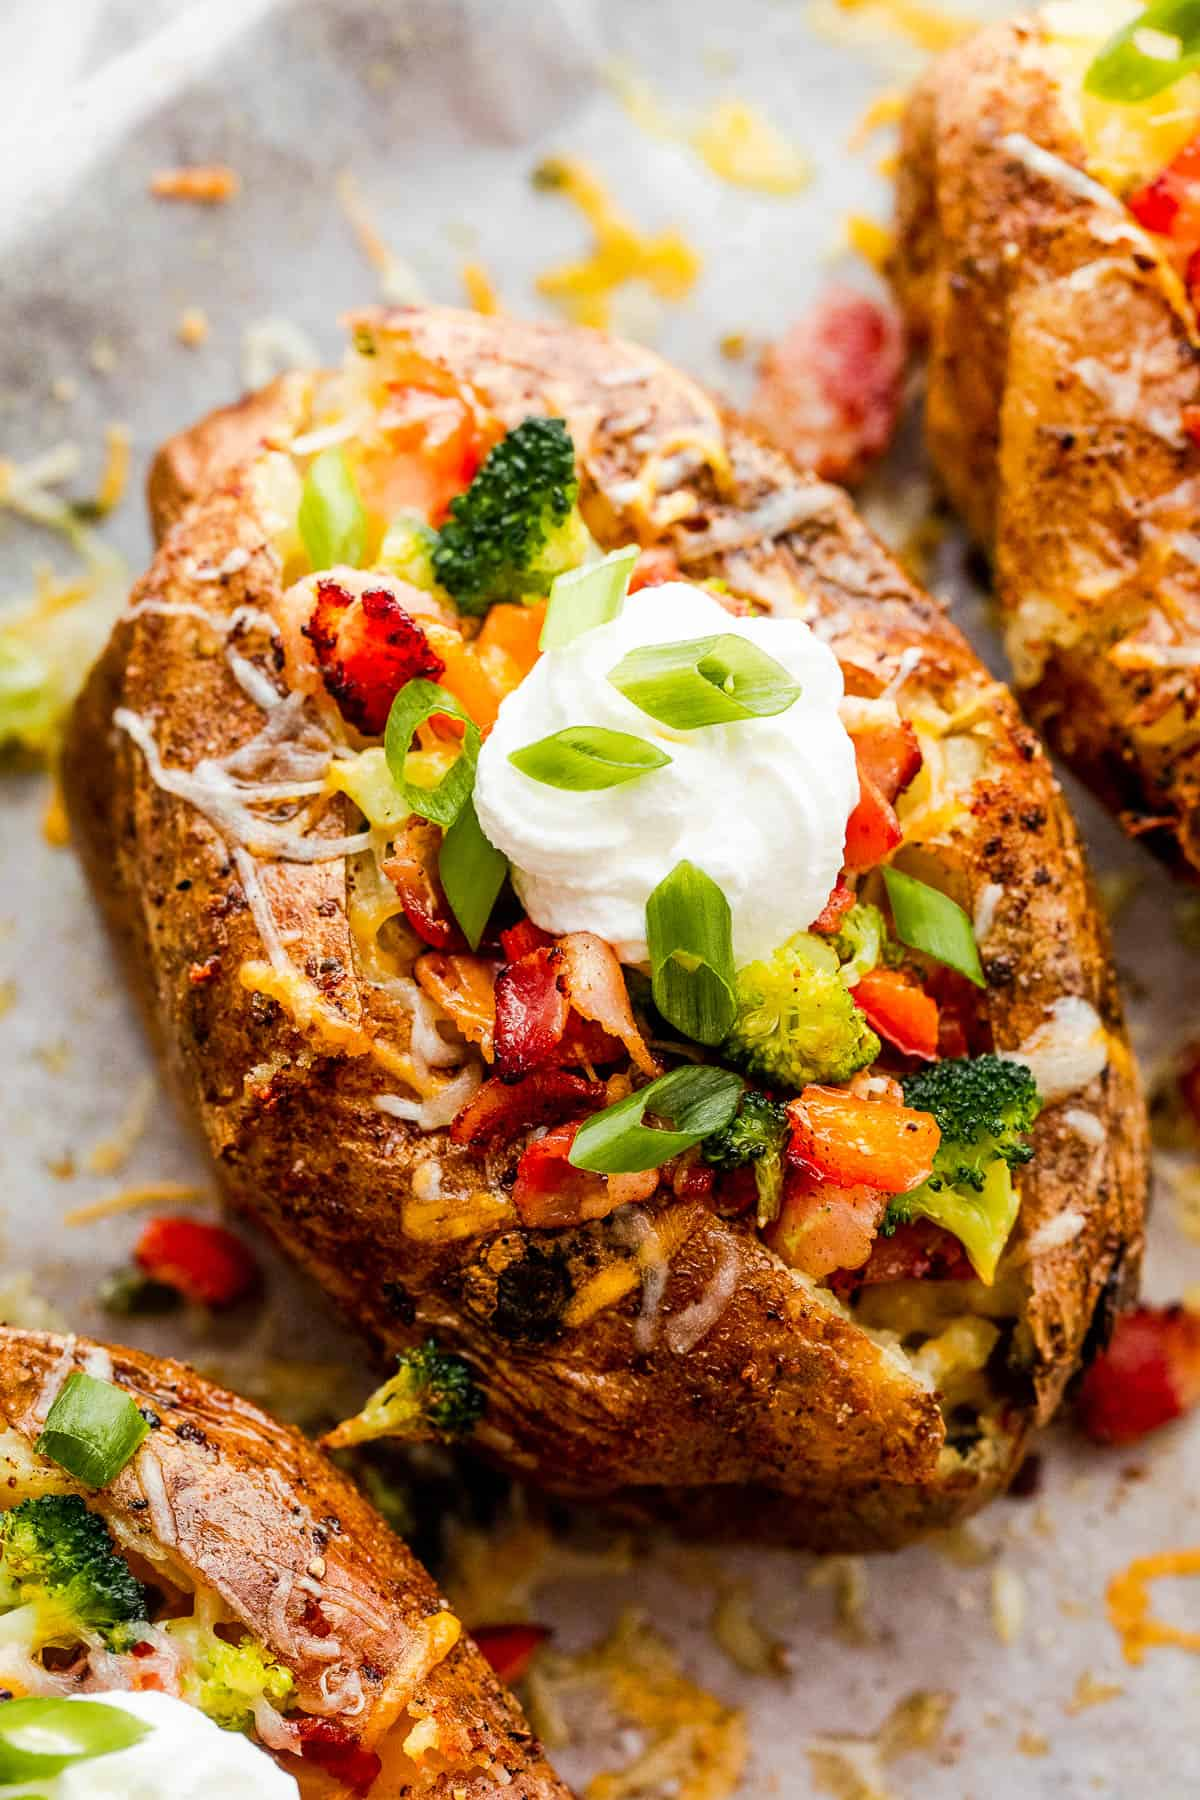 Three Instant Pot Baked Potatoes Beside Bowls of Cheese, Broccoli, Bacon, Chopped Green Onions and Sour Cream